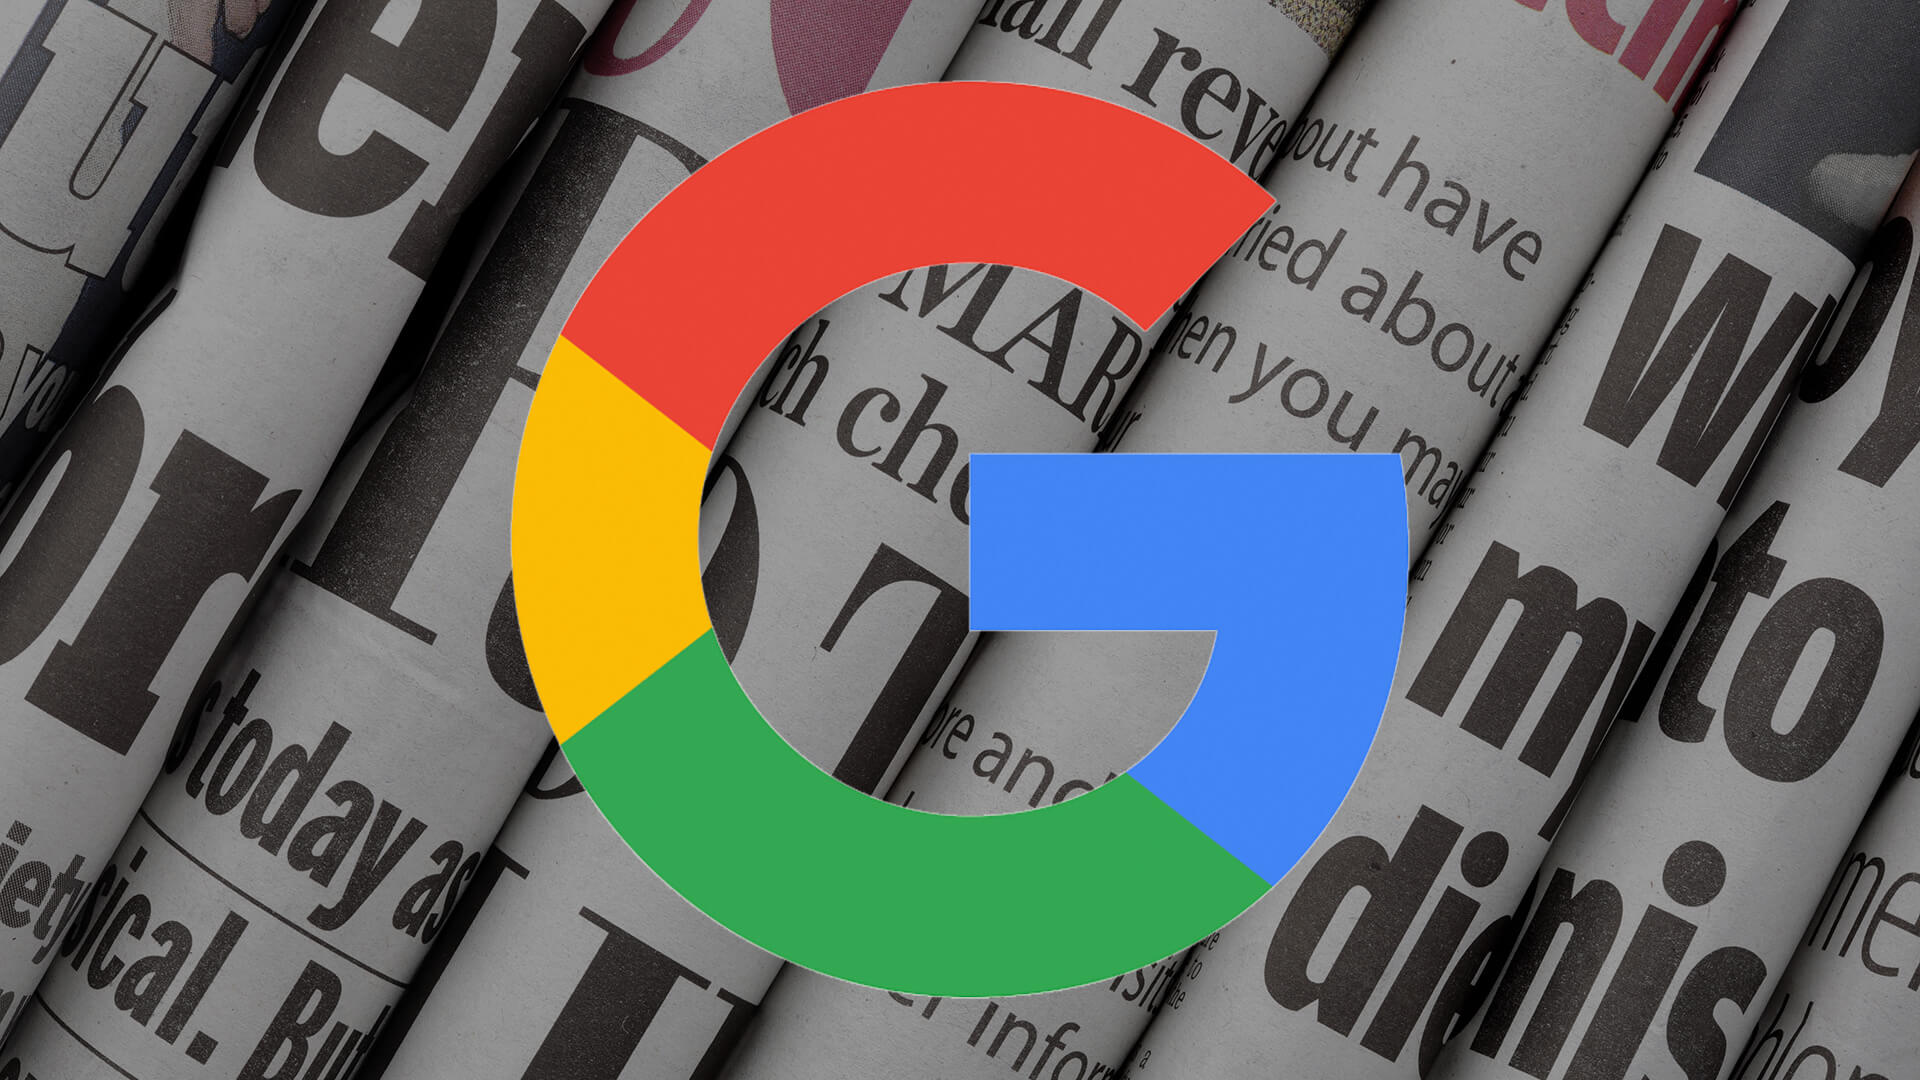 Google promotes false news - Newslibre